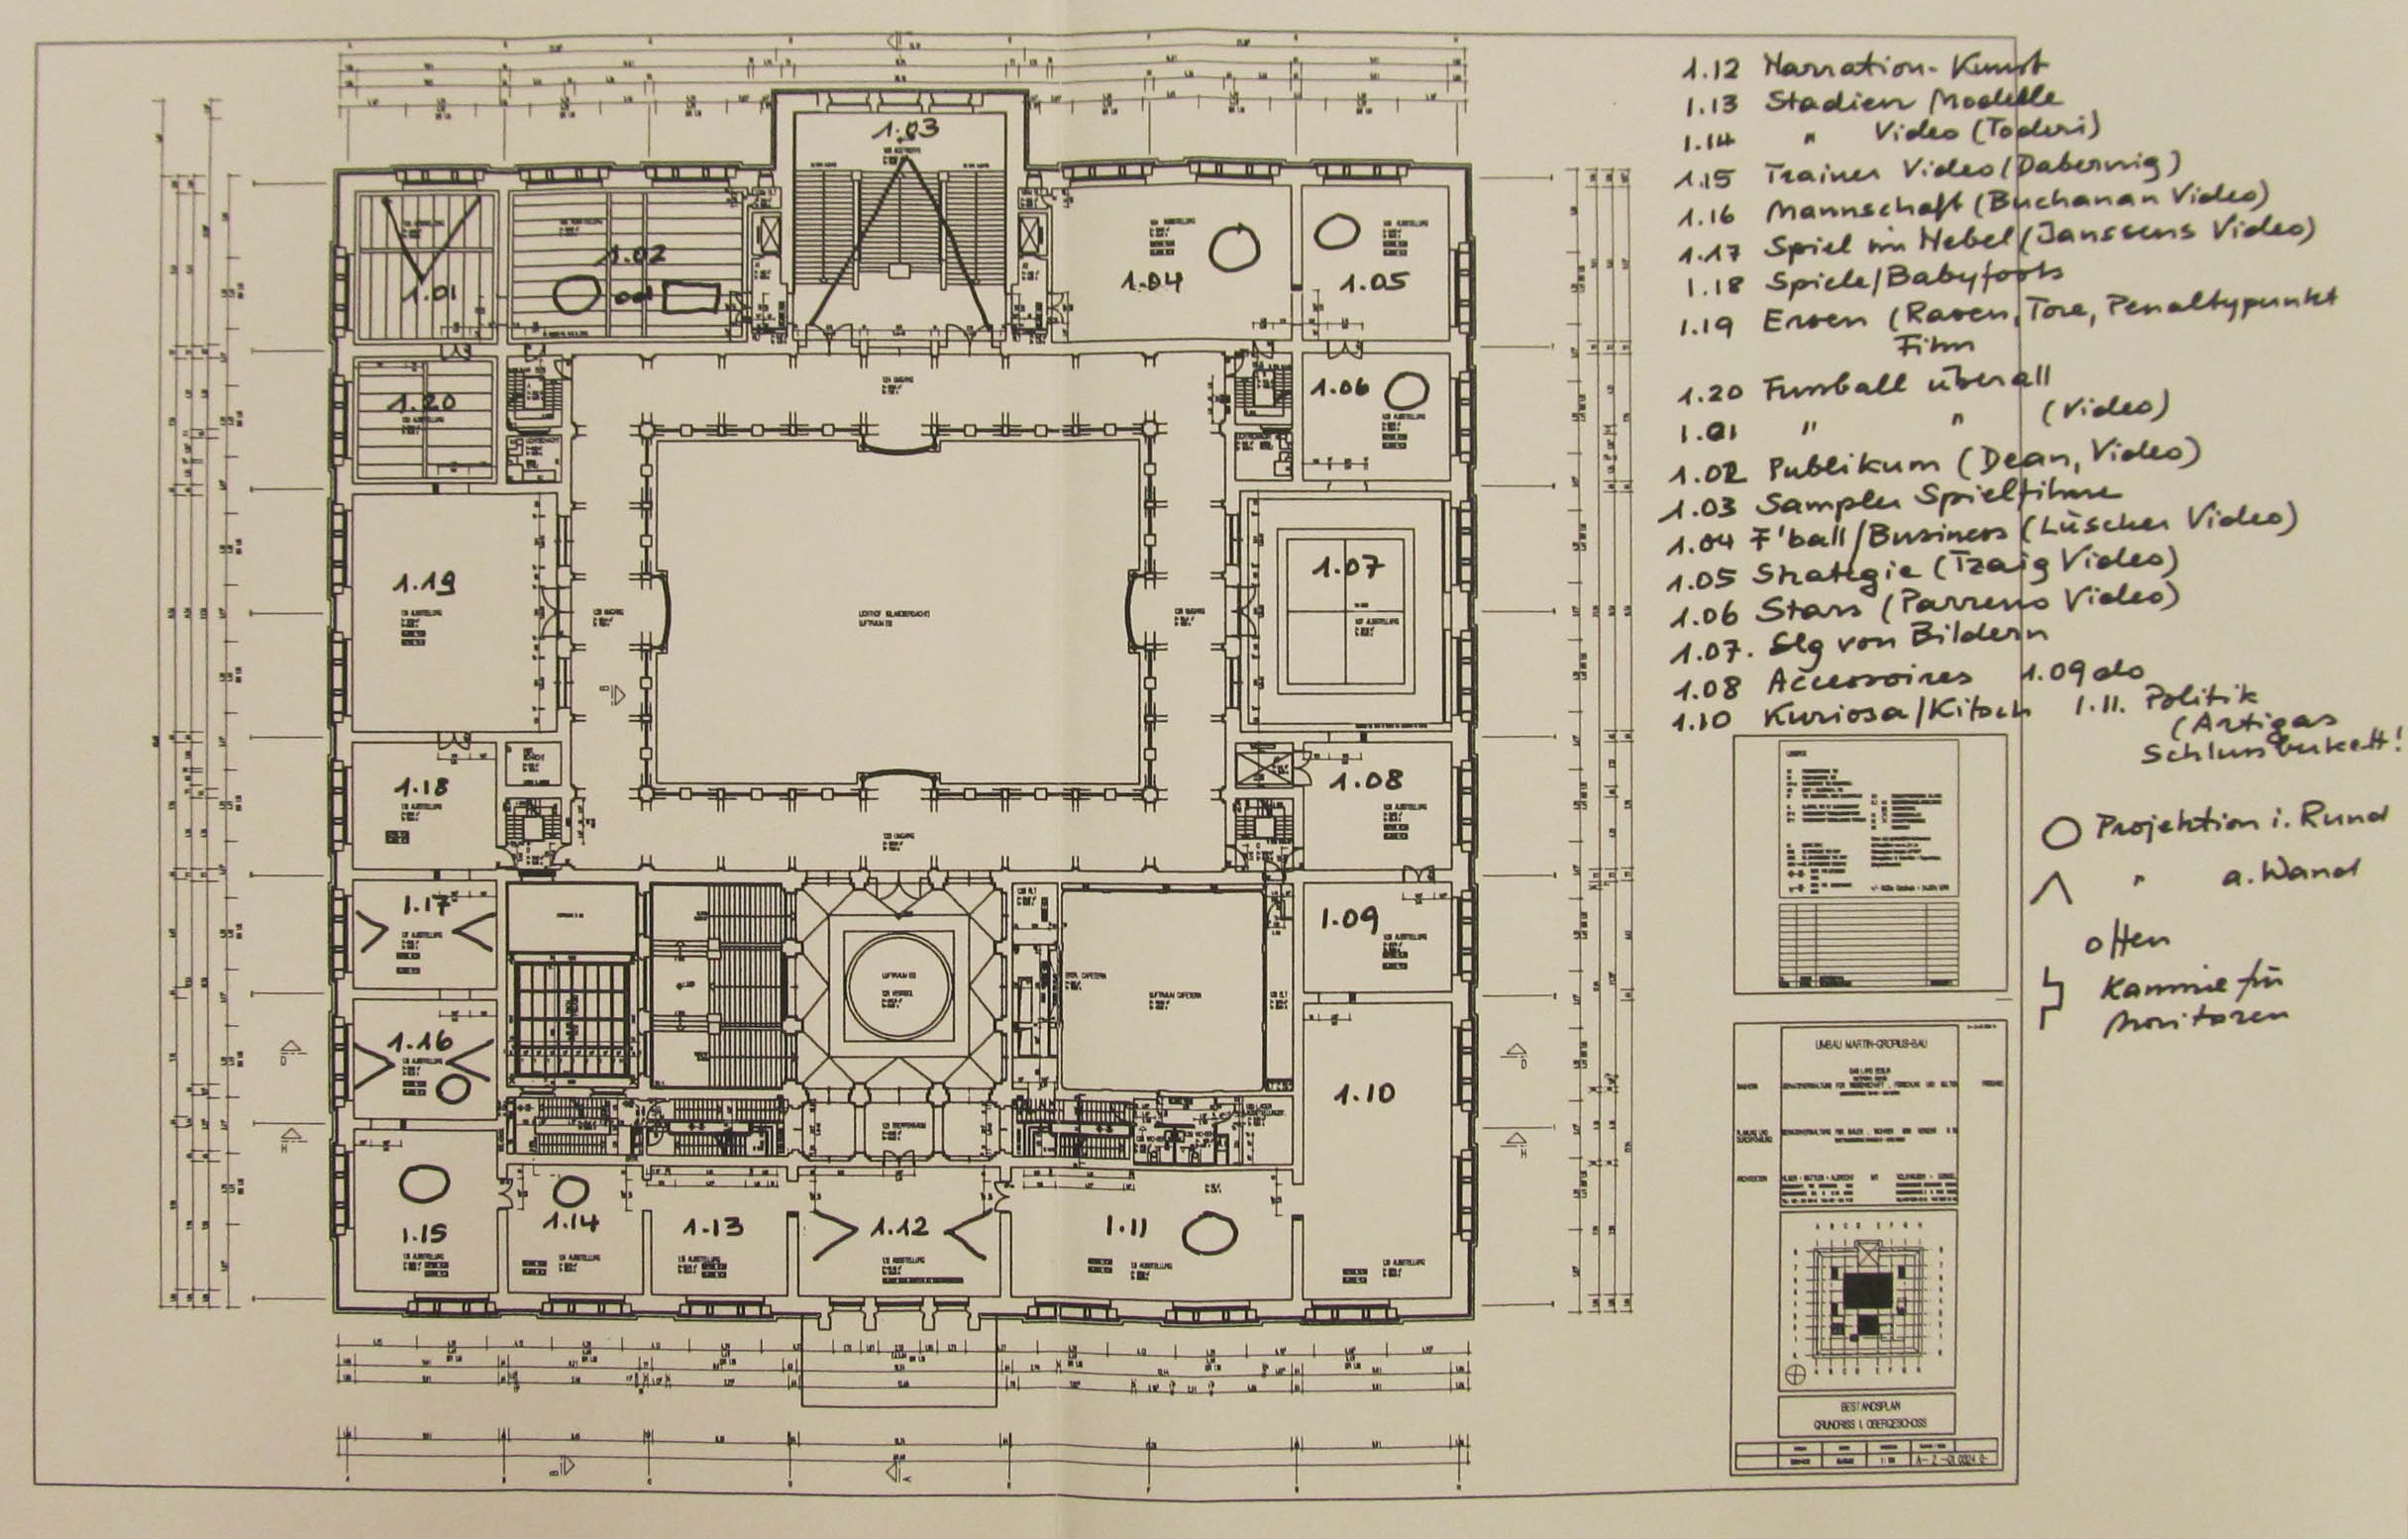 07-10 Harald Szeemann, floor plan of the Martin-Gropius-Bau with notes on possible themes and artists for his exhibition Rundlederwelten. Undated, approximately 2004, Getty Research Institute, 2011.M.30